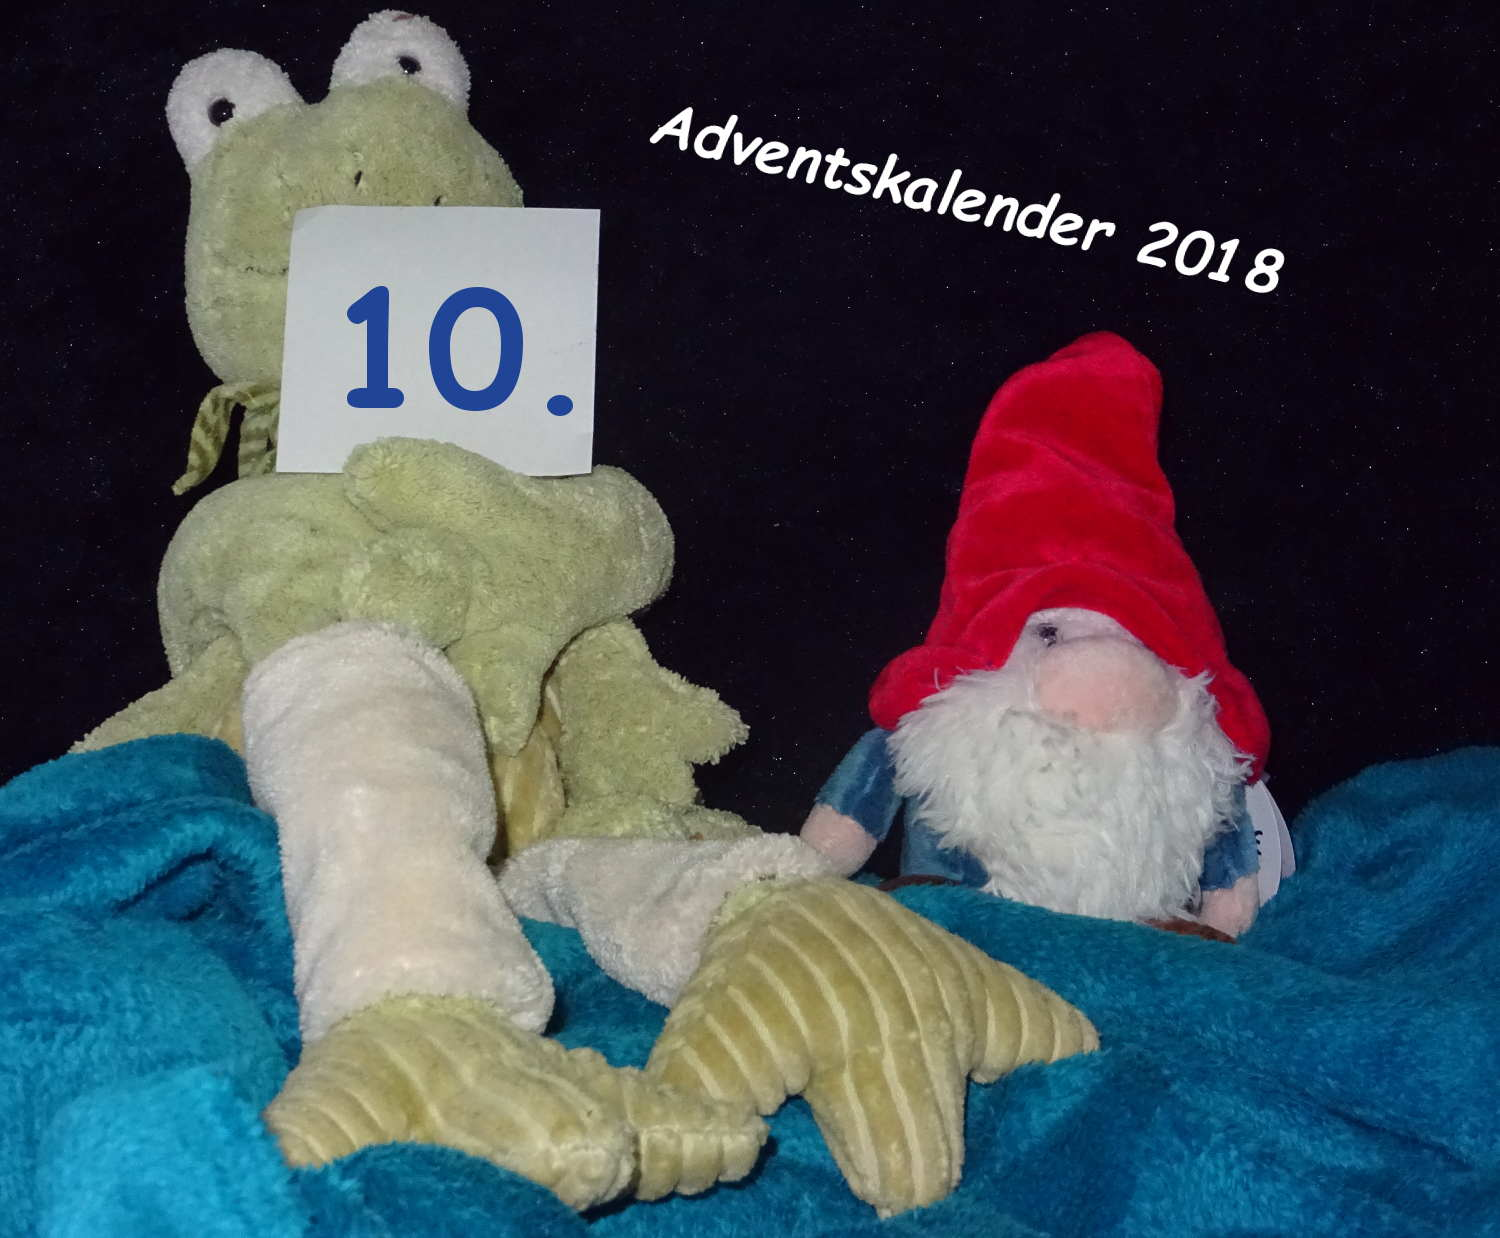 Adventskalendergeschichte 10